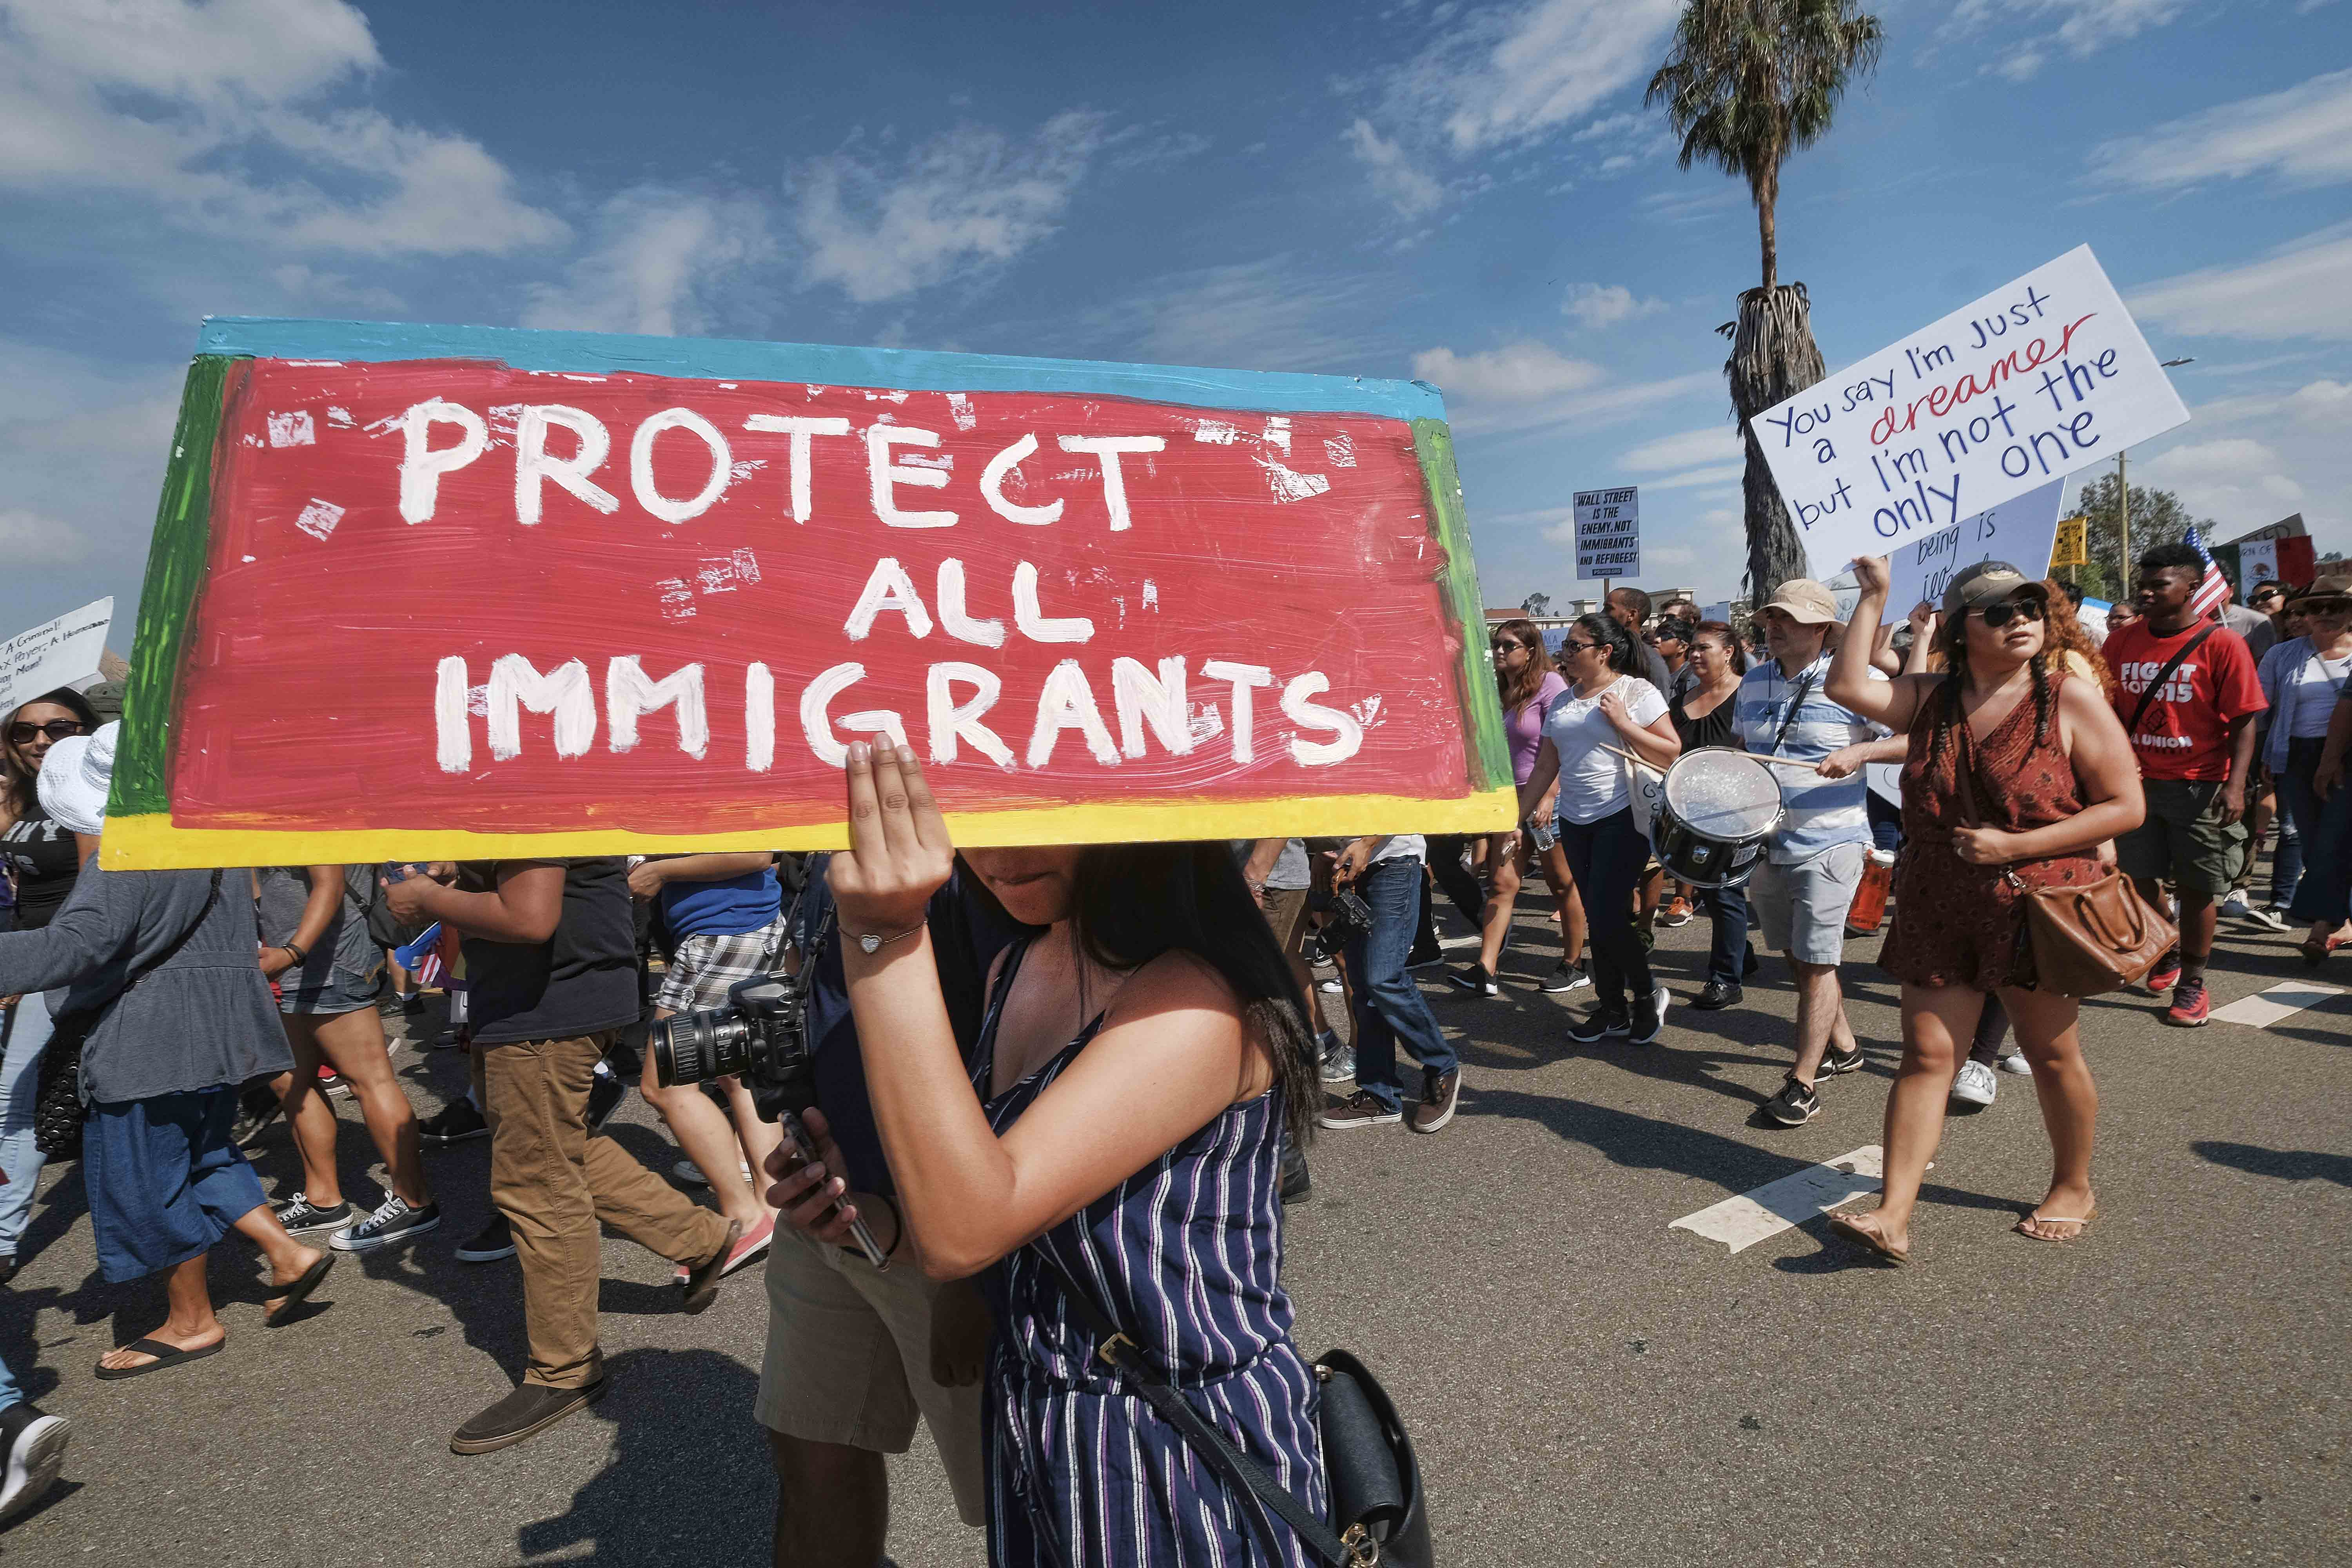 Supporters of the Deferred Action for Childhood Arrivals, or DACA chant slogans and carry signs while joining a Labor Day rally in downtown Los Angeles, Monday, Sept. 4, 2017.